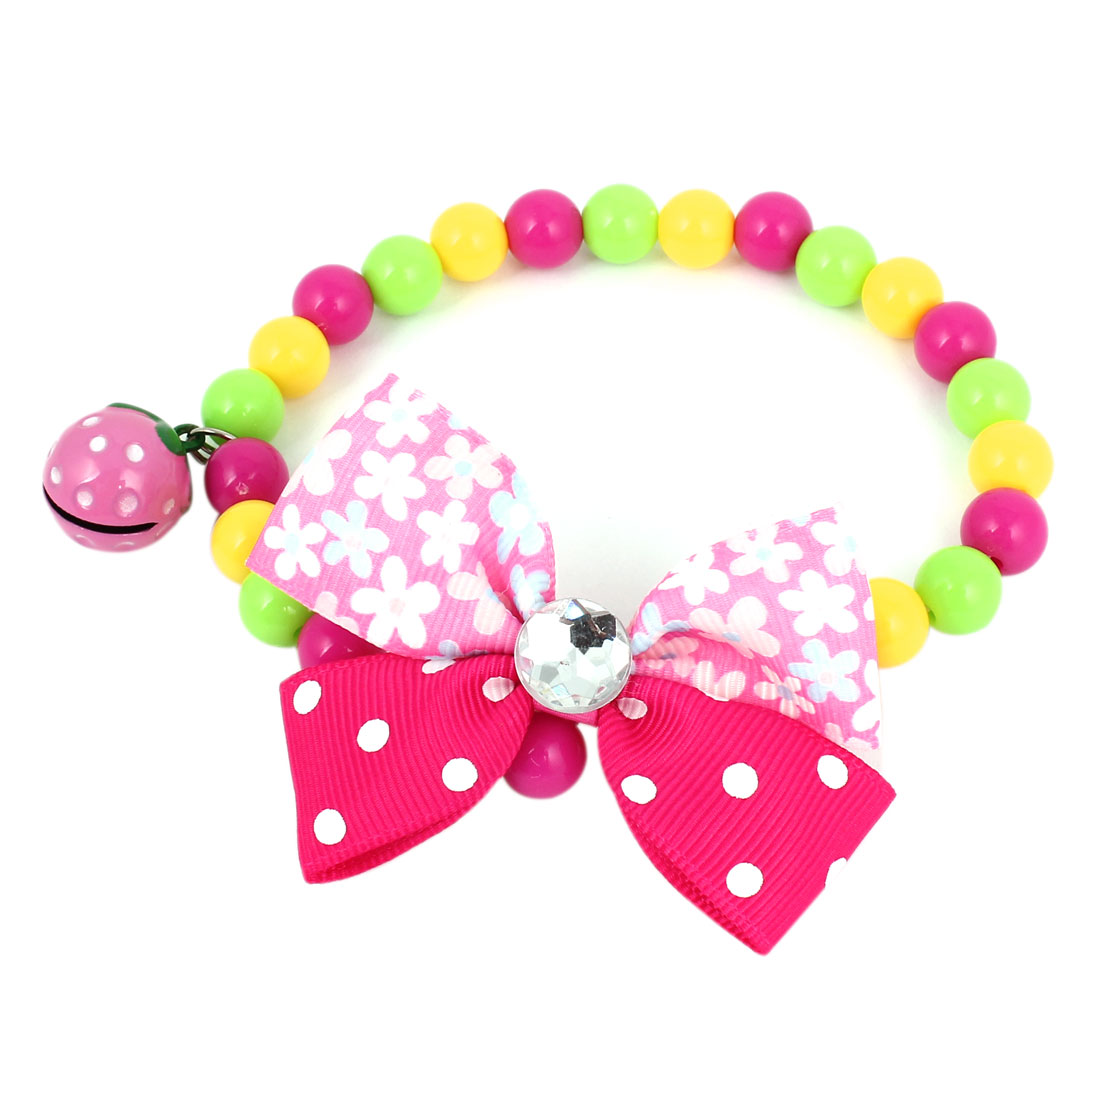 Metal Bell Pendant Bowtie Accent Pet Dog Plastic Round Beads Collar Necklace Assorted Color XS